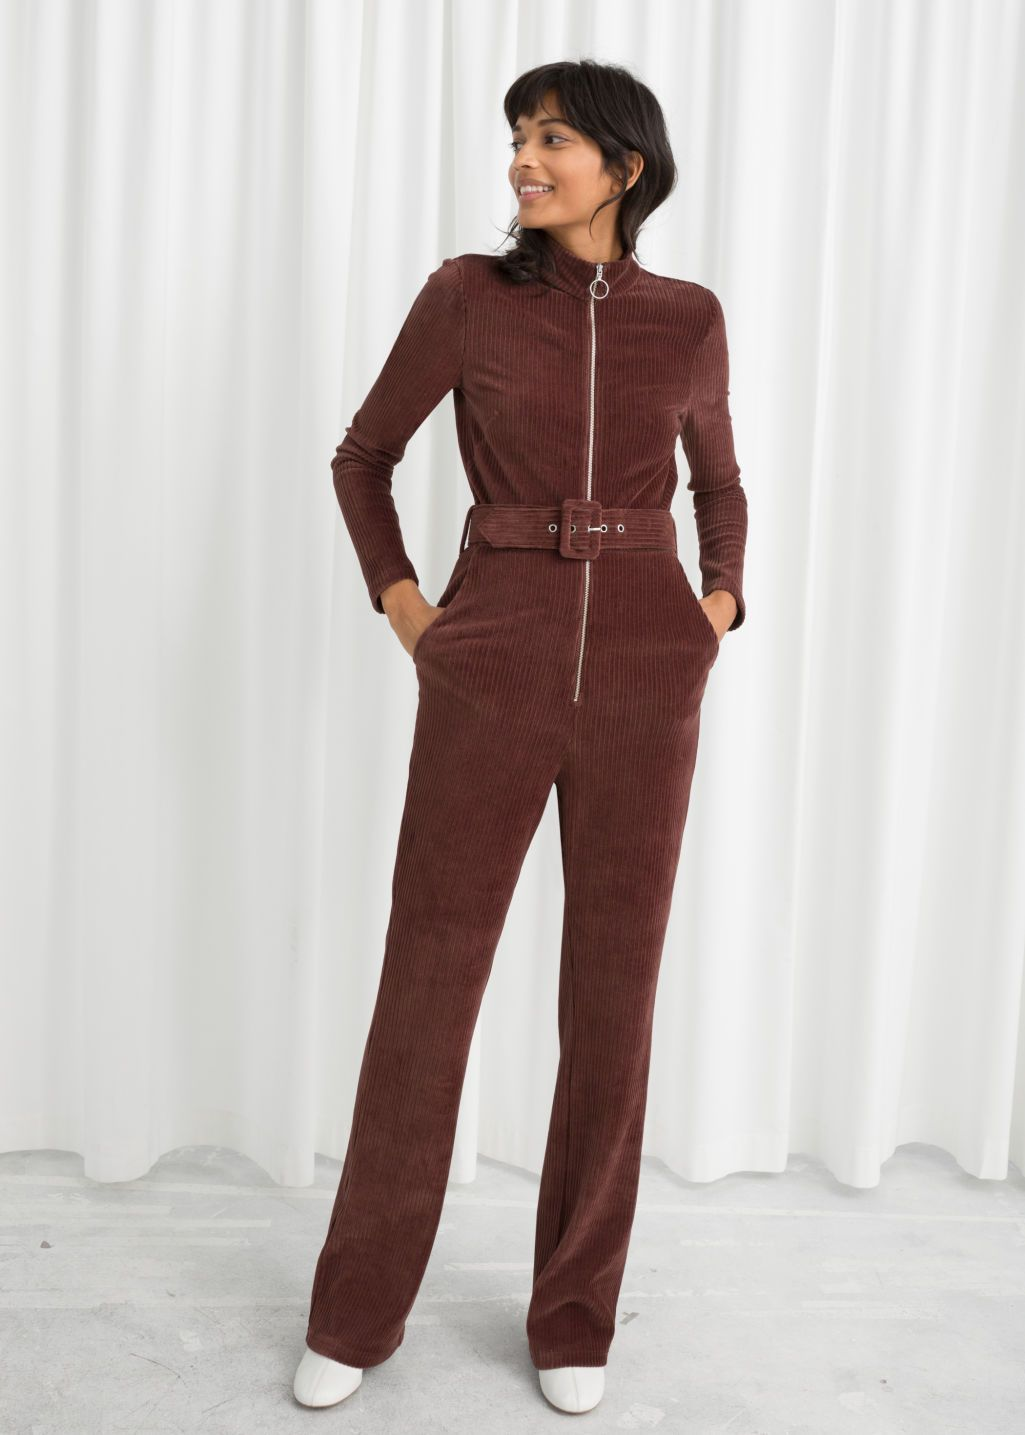 231f0bcaaed Belted Corduroy Jumpsuit - Burgundy - Jumpsuits   Playsuits -   Other  Stories